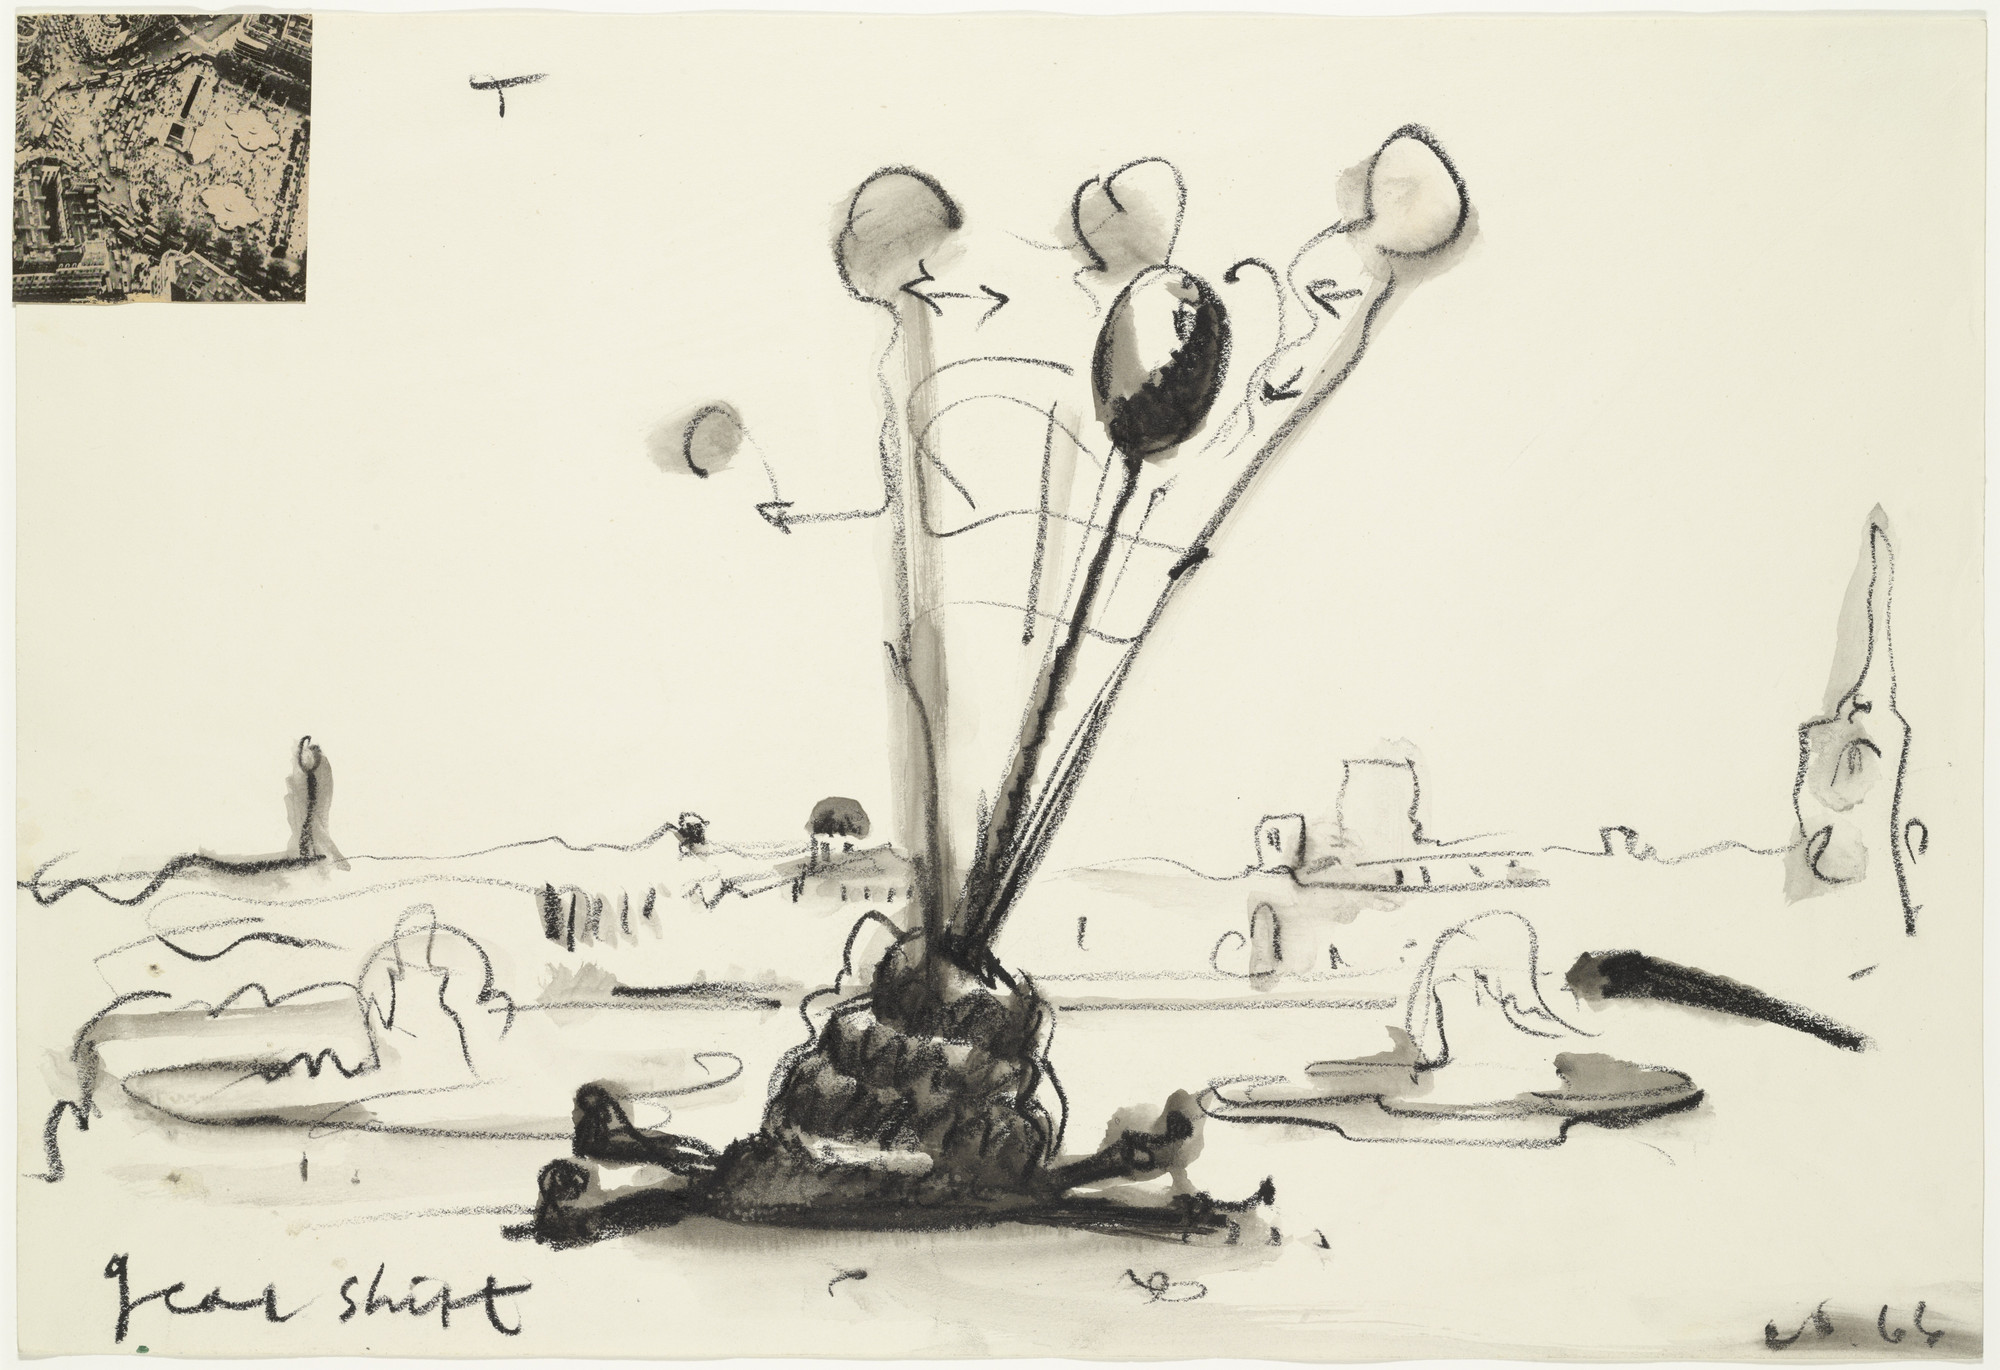 Claes Oldenburg. Proposed Colossal Monument to Replace Nelson Column in Trafalgar Square--Gearshift in Motion. 1966